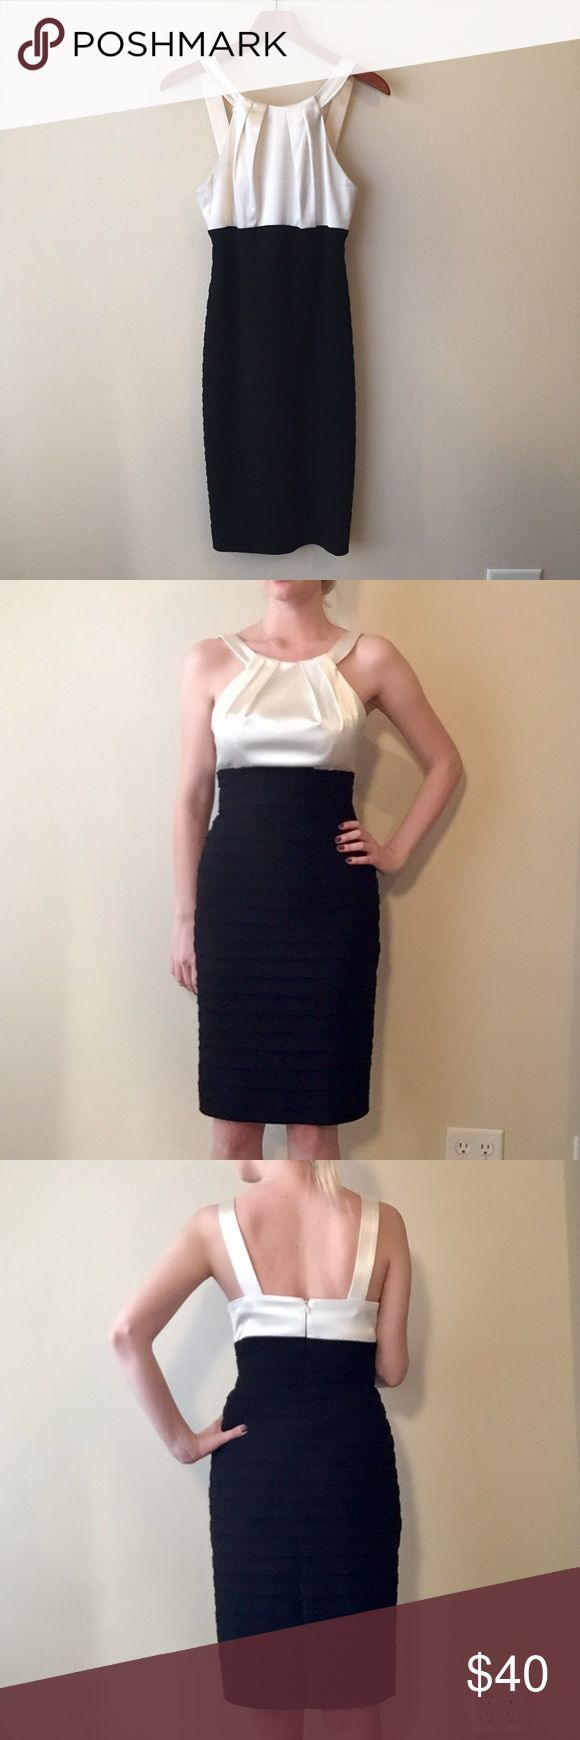 Black and White Cocktail Dress This classy black and white cocktail dress is the brand XSCAPE and was originally purchased from Macy's. The dress is form-fitting, though not tight, and flattering. I have worn this dress as a bra size 34B-D and pants size 2-4 and it has fit perfectly. The dress has been worn 4-5 times, and does have some staining on the inside front from makeup, but nothing that is visible. Xscape Dresses